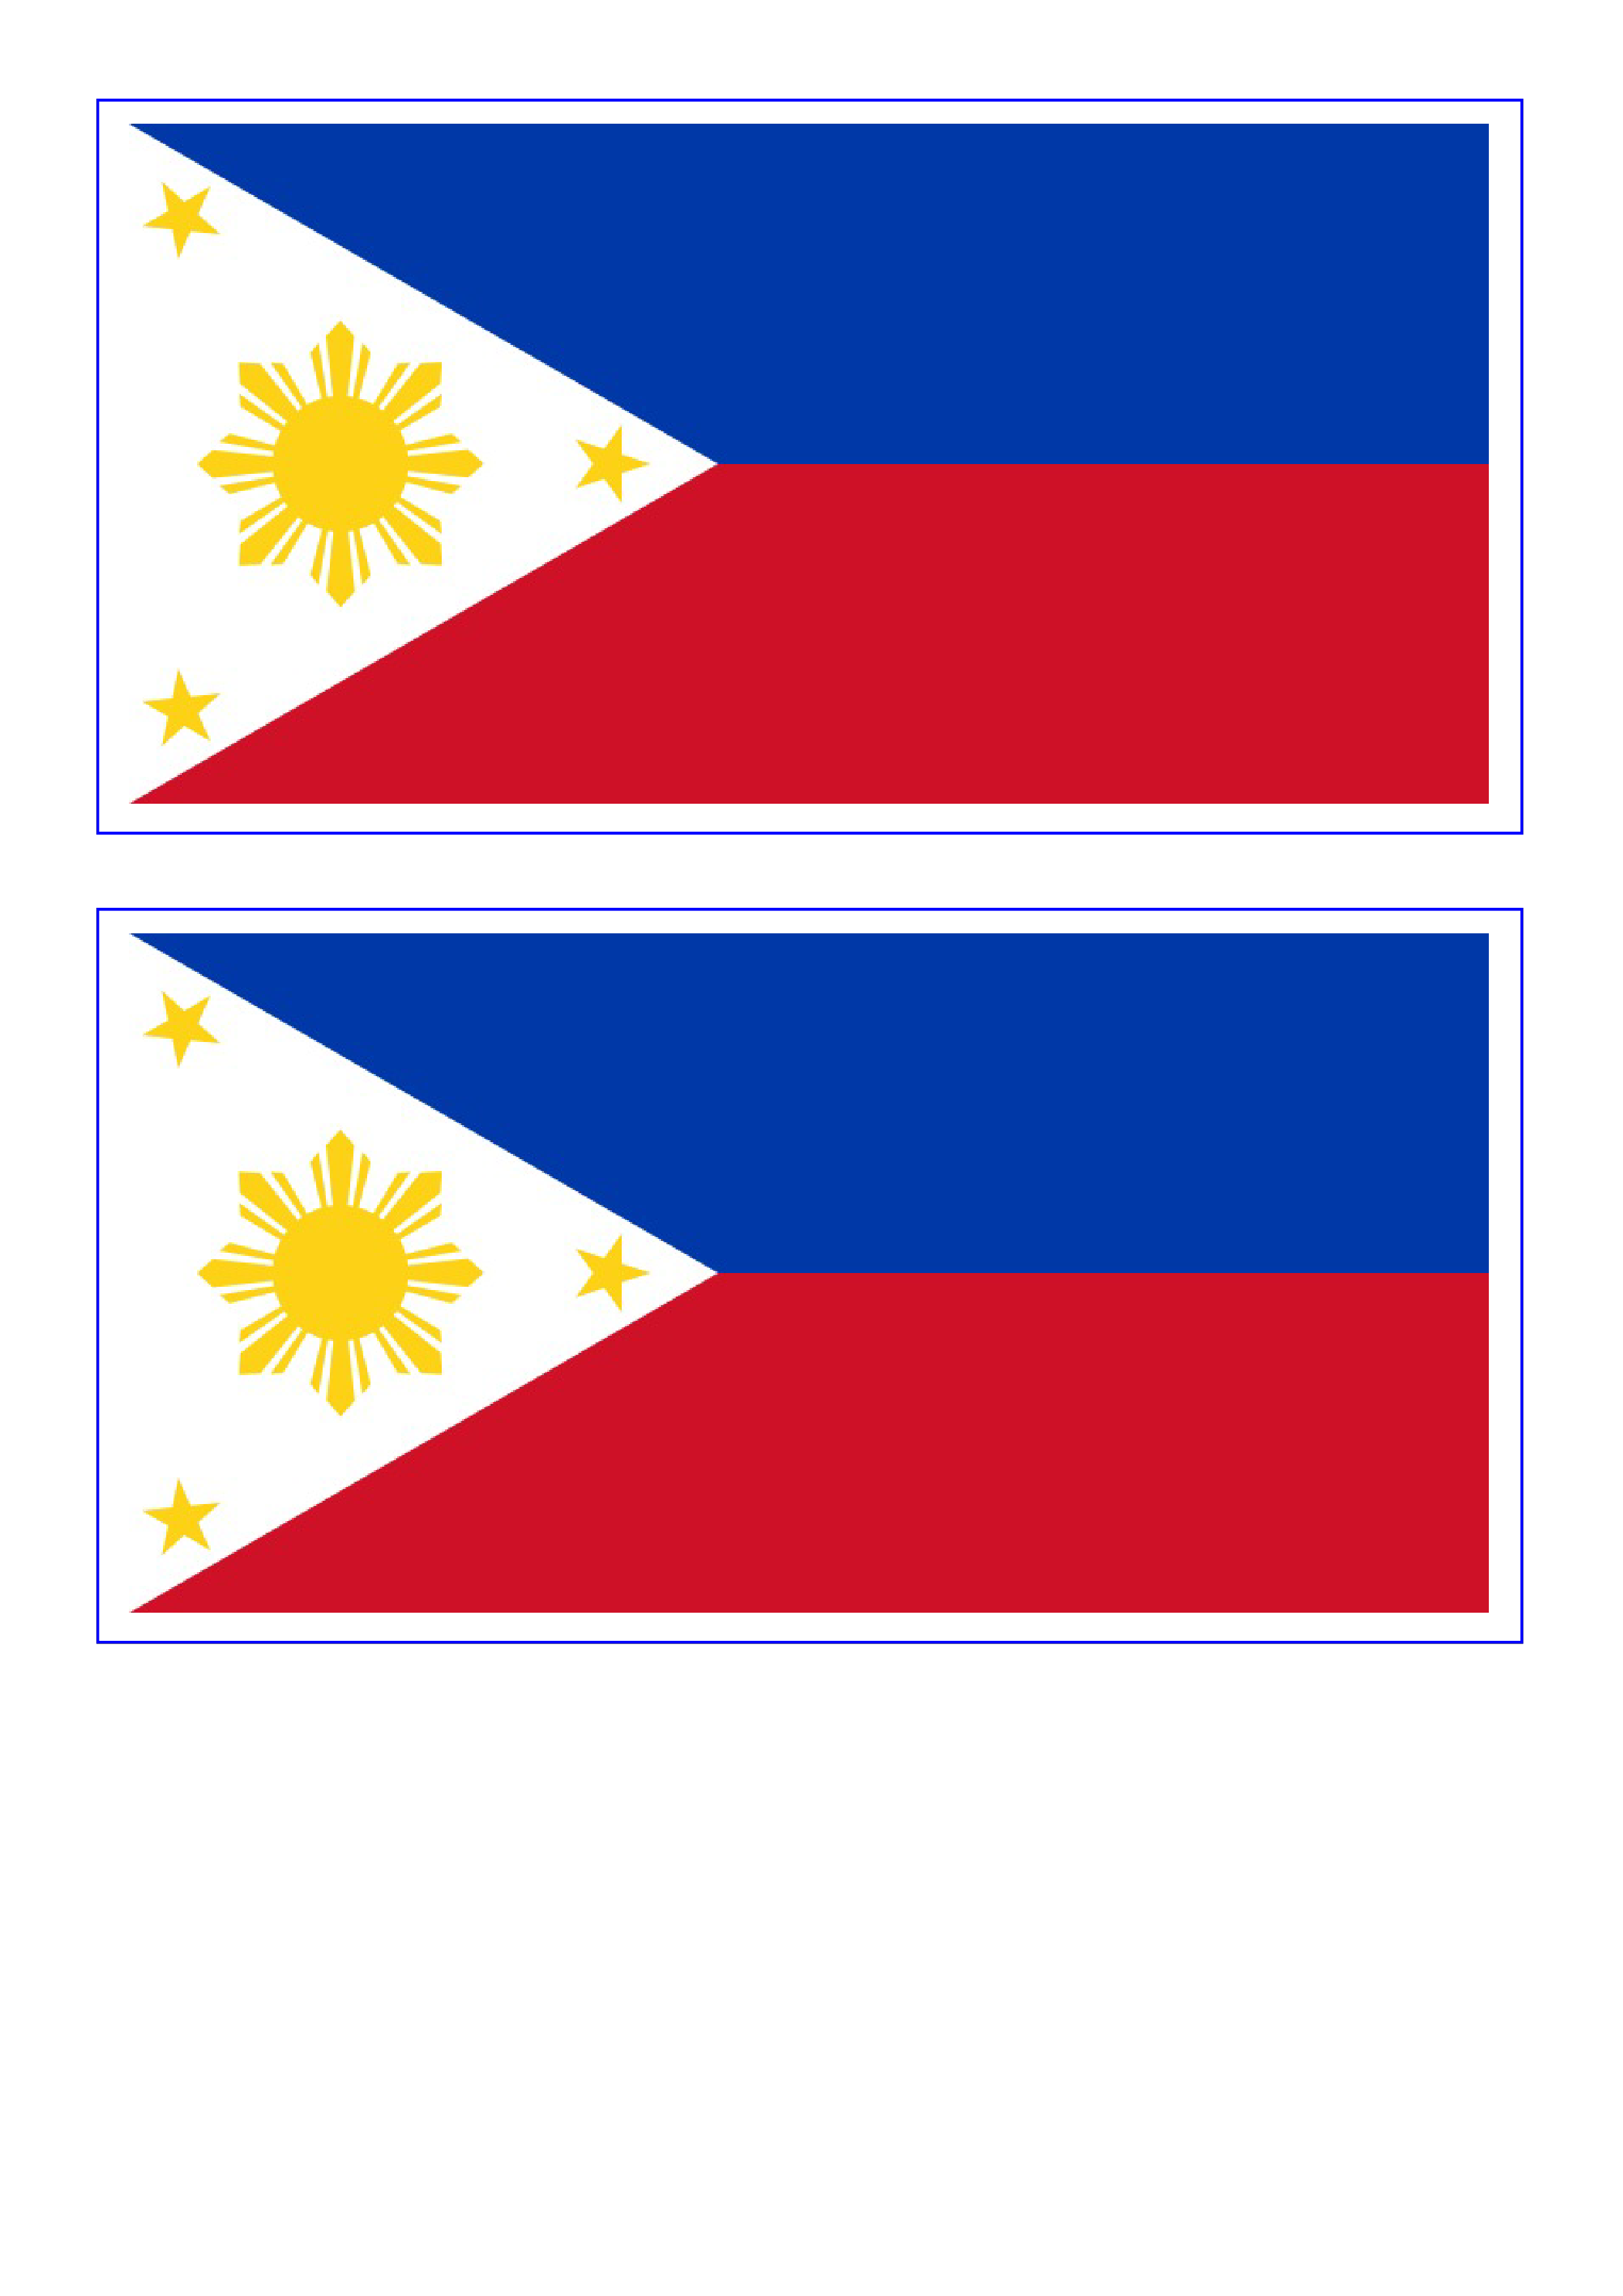 Philippines Flag Download This Free Printable Philippines Template A4 Flag A5 Flag 8 And 21 Flags On One Flag Template Flag Coloring Pages Philippine Flag